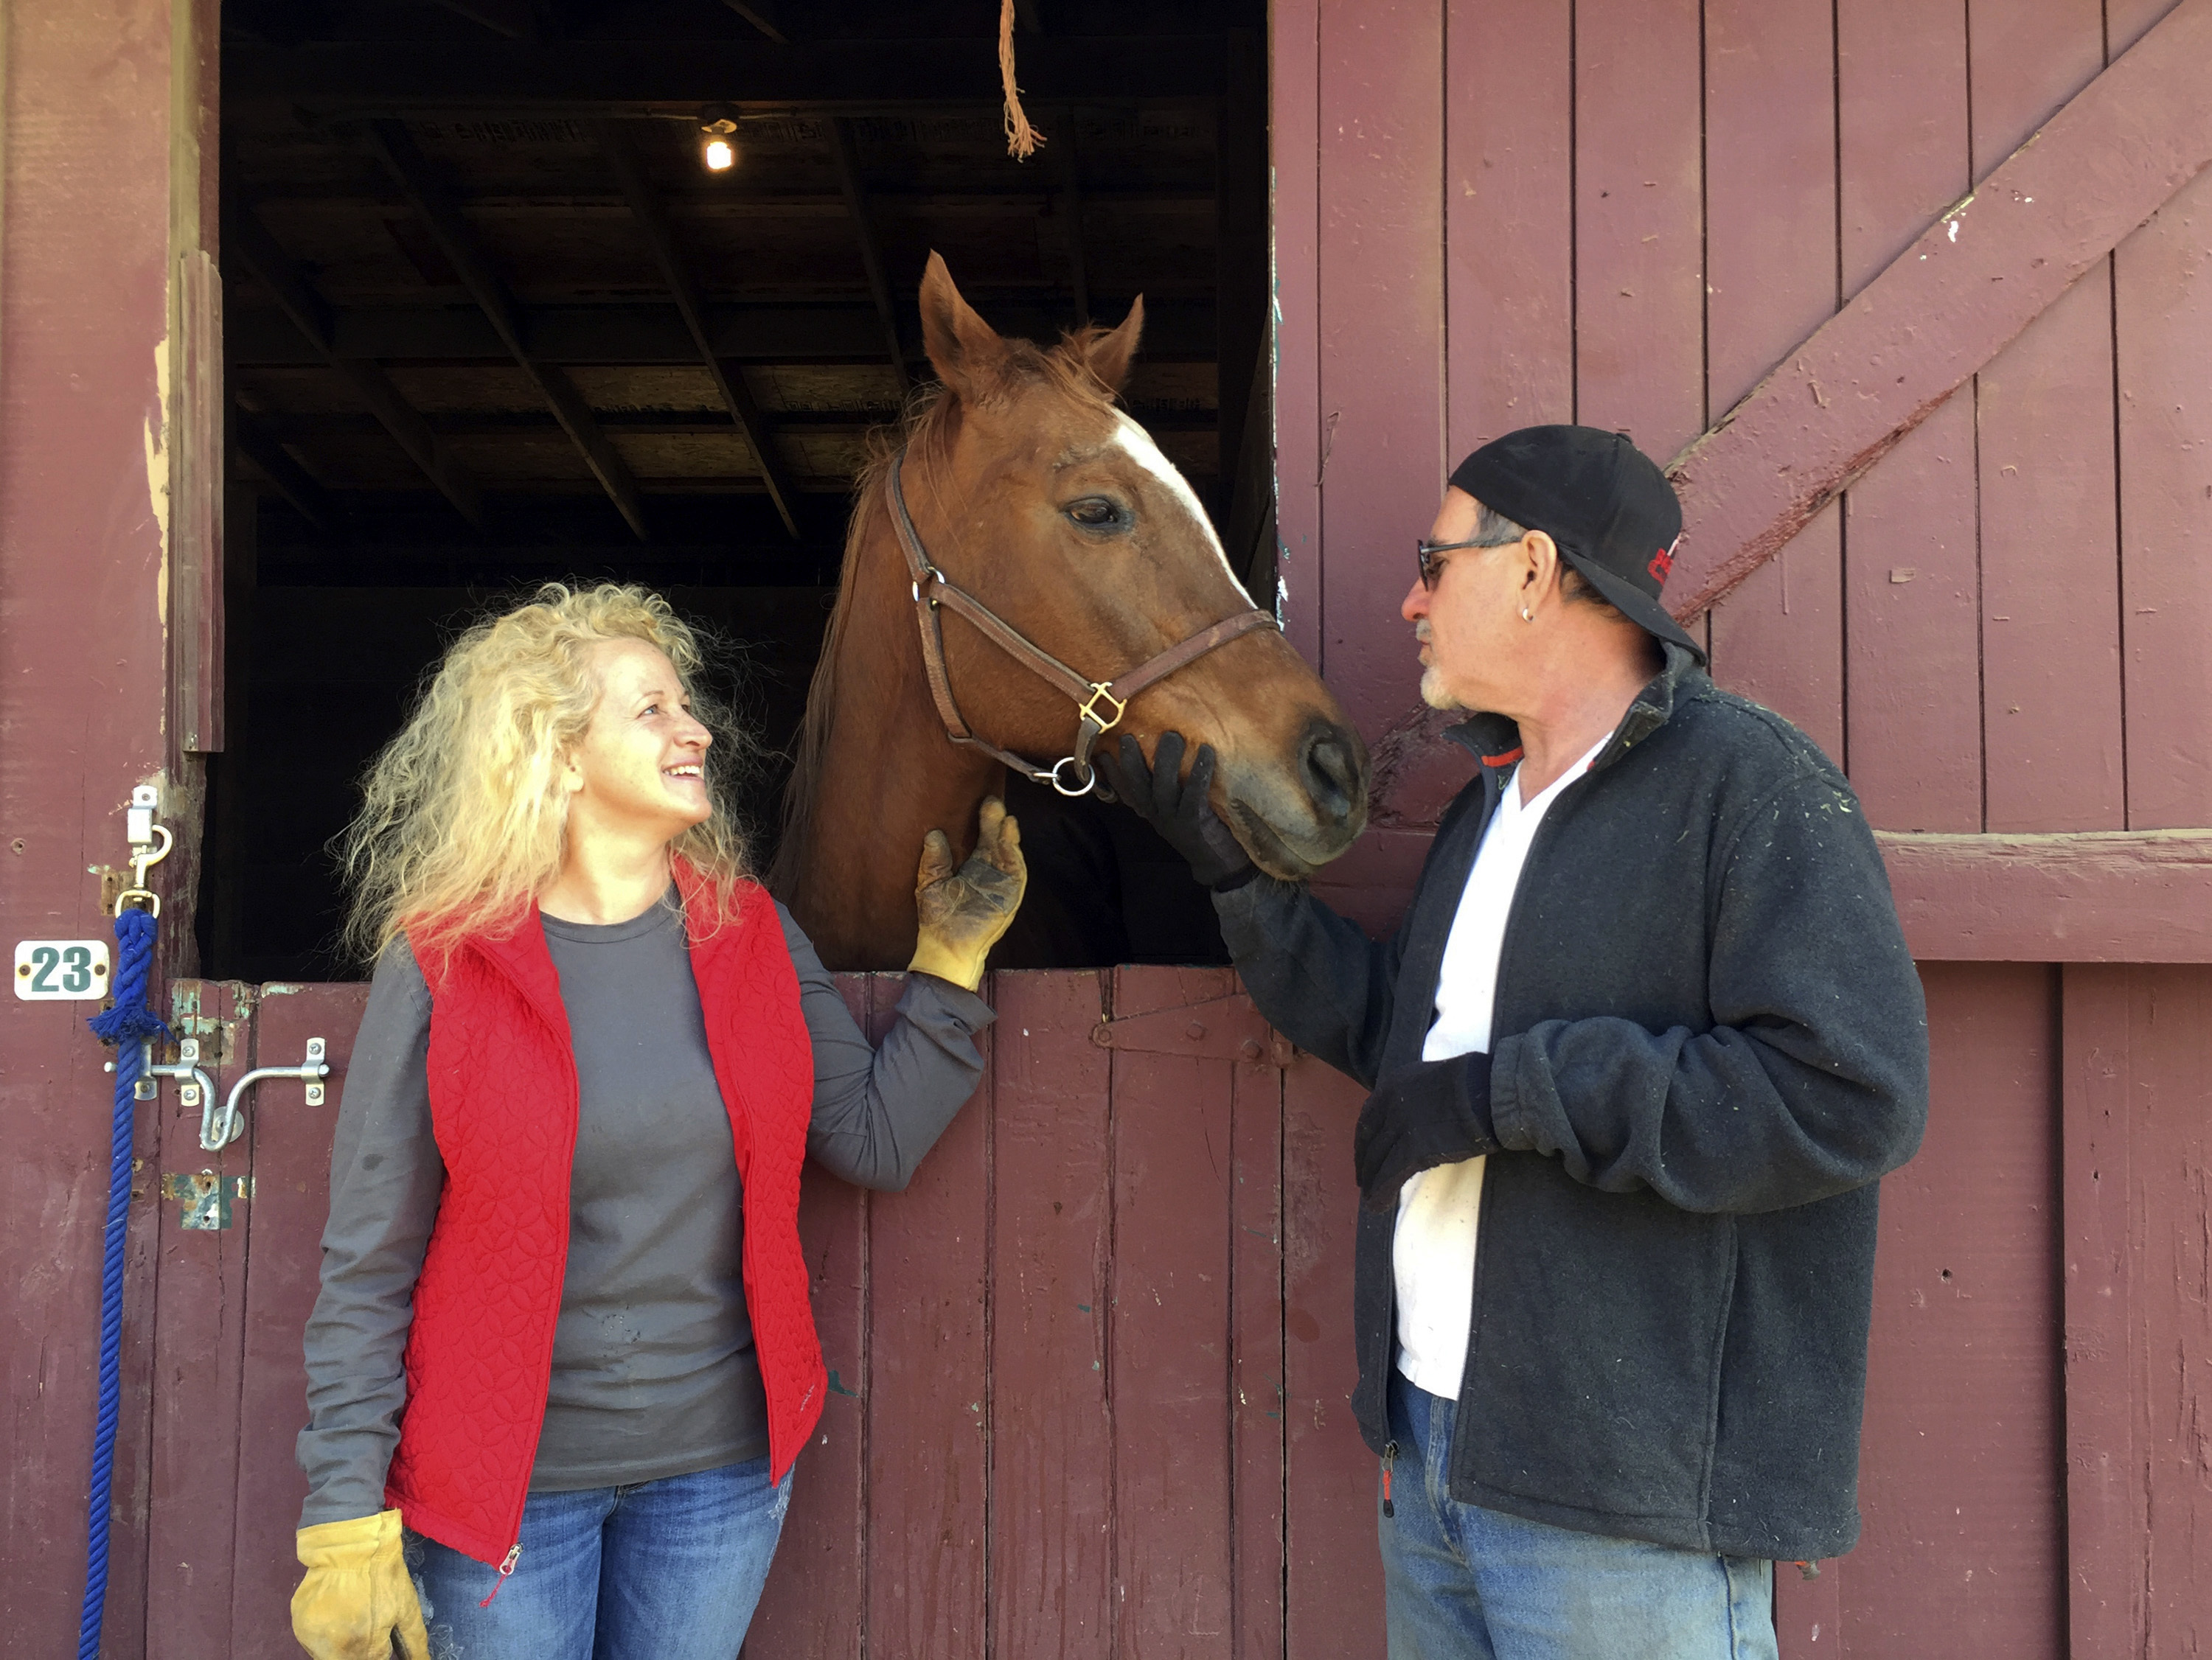 <div class='meta'><div class='origin-logo' data-origin='none'></div><span class='caption-text' data-credit='Amanda Lee Myers/AP Photo'>Brian Bromberg and Wendy Frank pose with one of the horses they rescued from their Ojai, Calif., home. They're calling their survival and that of their beloved horses a miracle.</span></div>